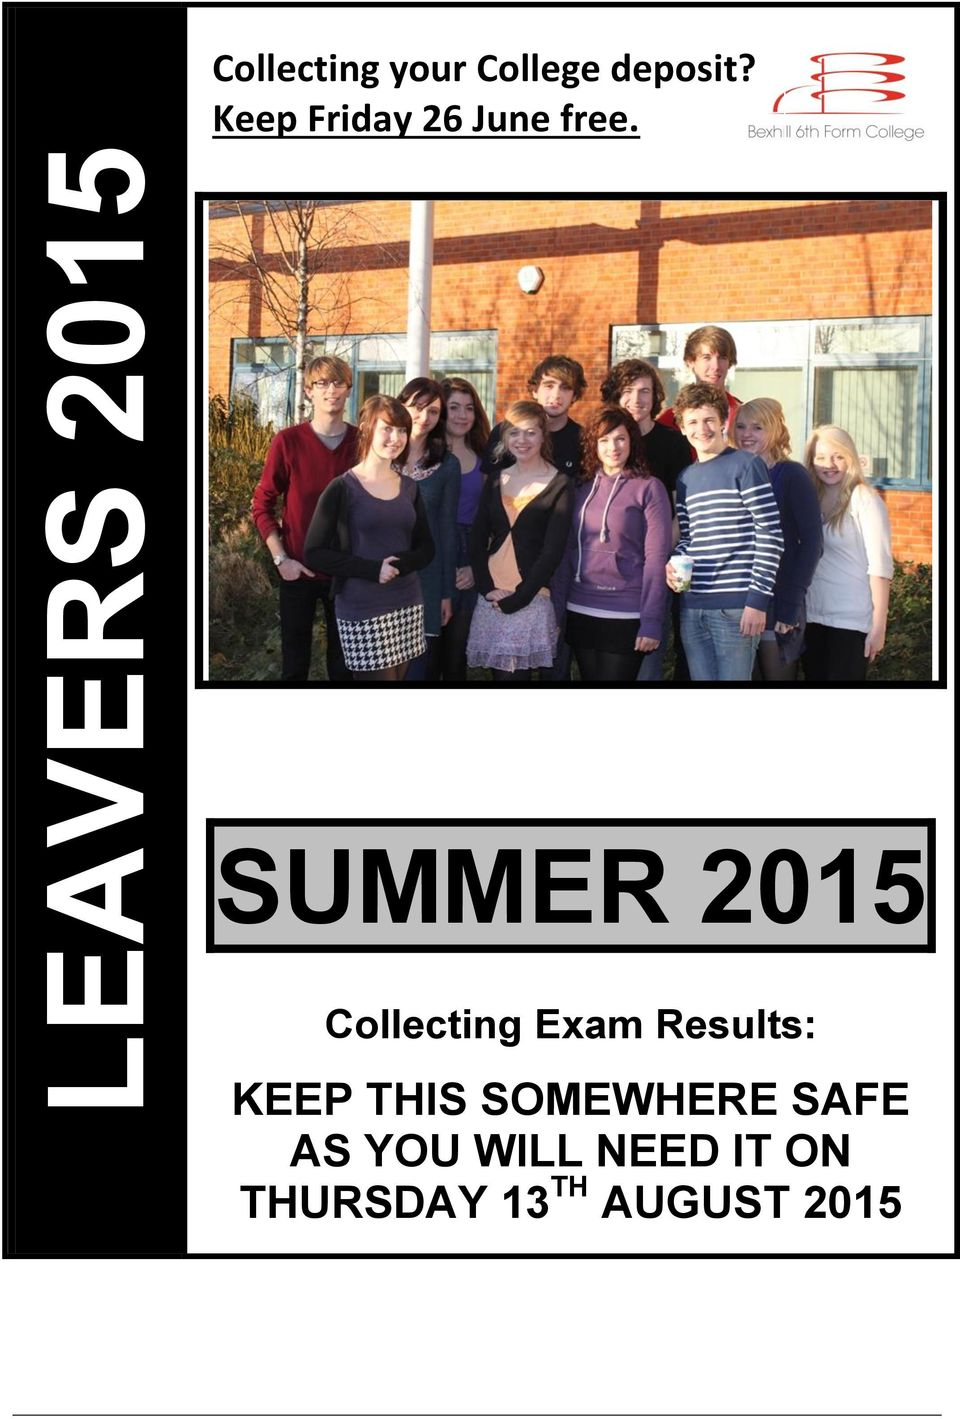 SUMMER 2015 Collecting Exam Results: KEEP